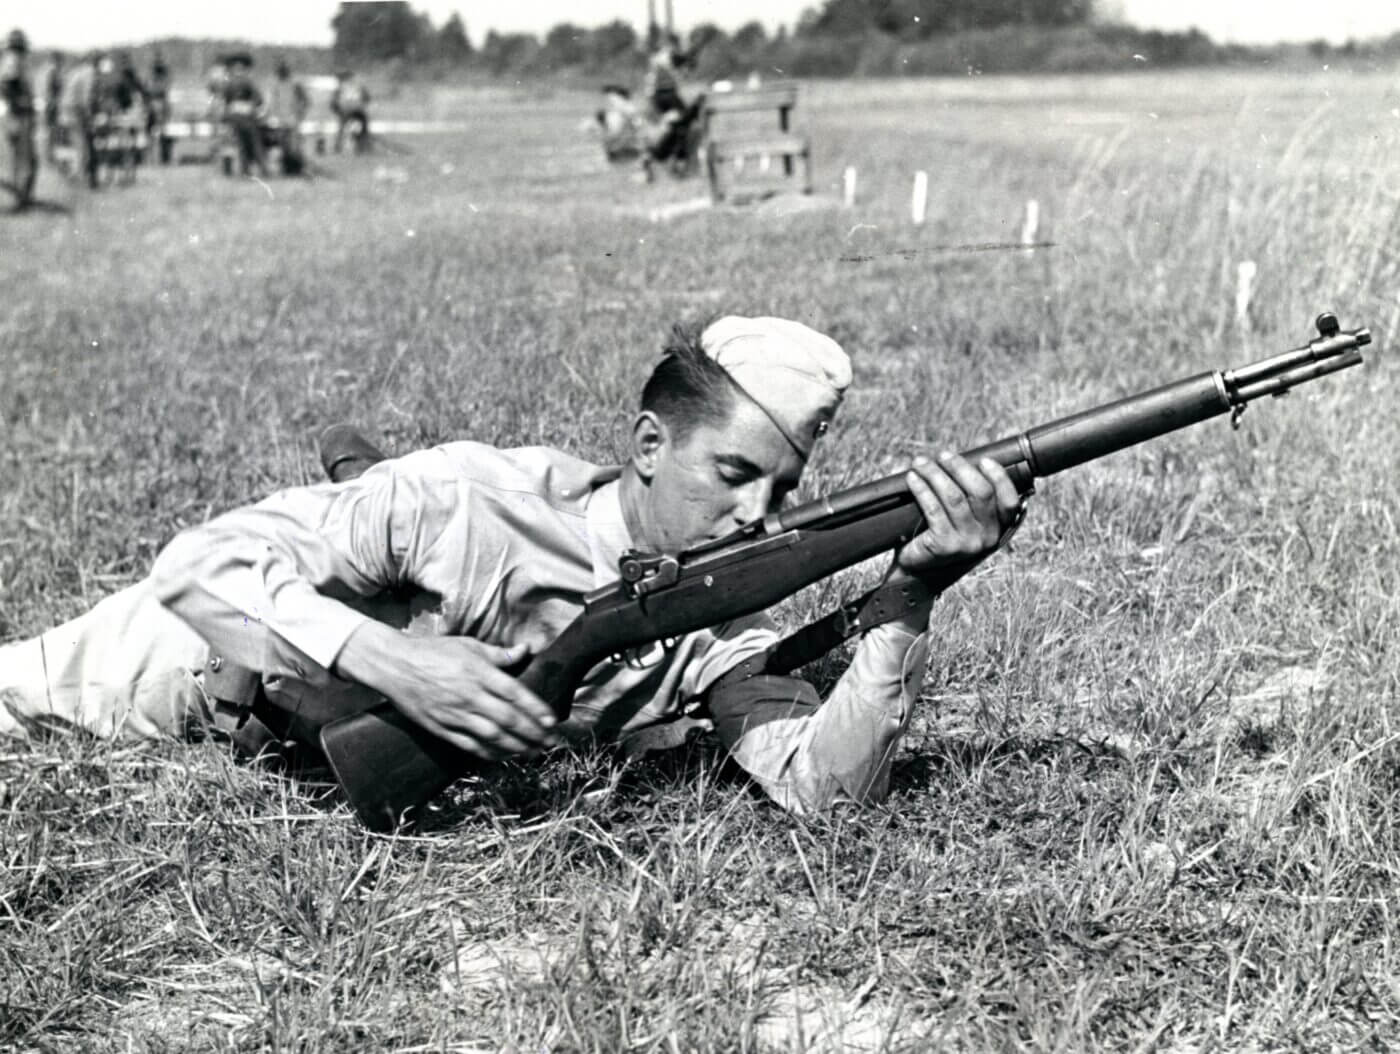 Soldier learning to use M1 Garand gas trap model